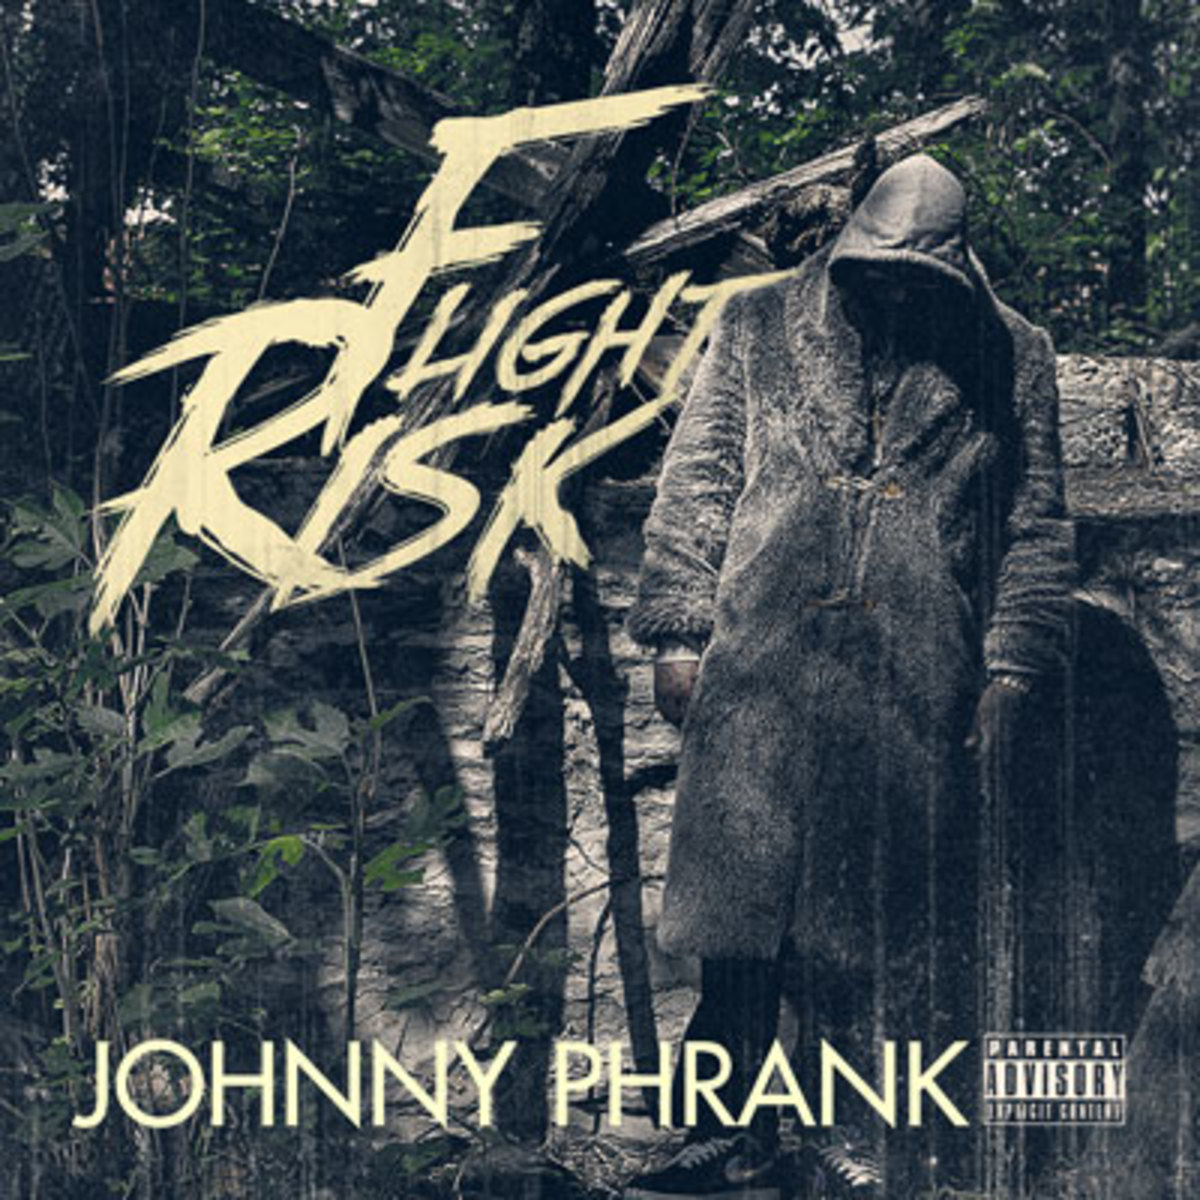 johnnyphrank-flightrisk.jpg